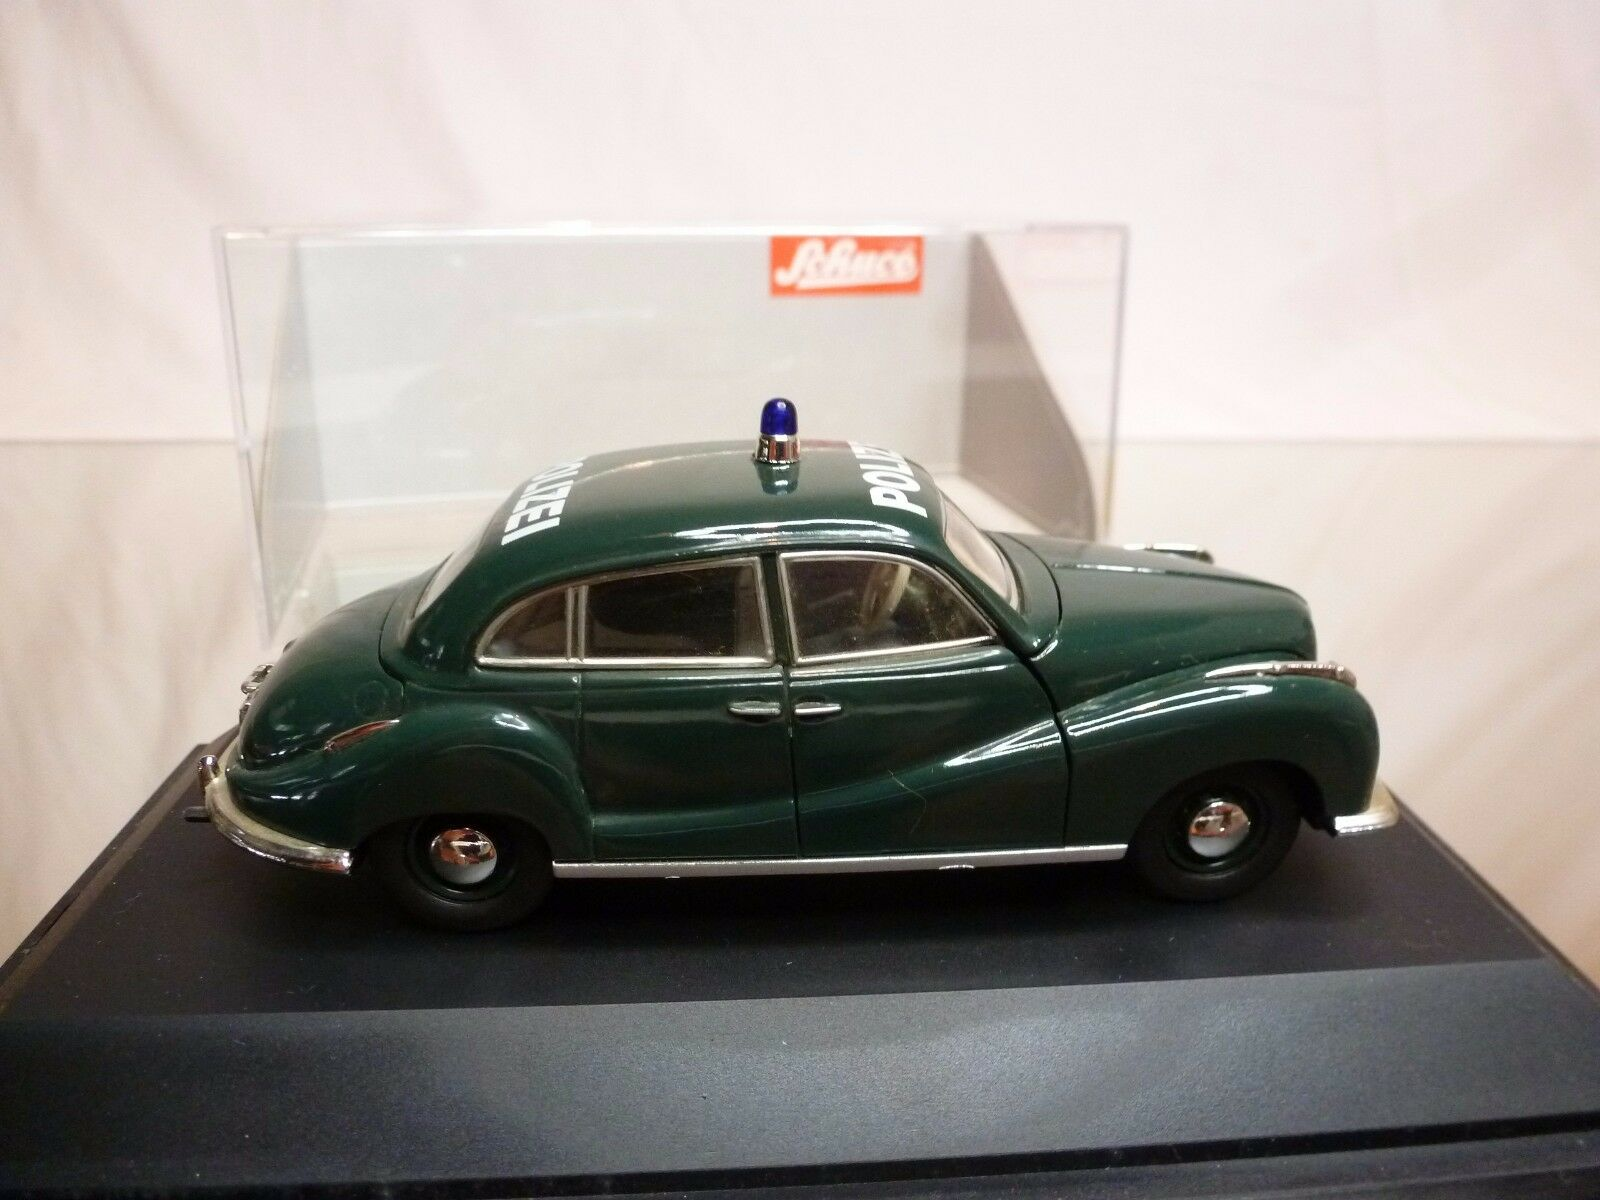 SCHUCO 81038 BMW 501 501 501 POLIZEI POLICE - GREEN 1 43 - GOOD CONDITION IN BOX 675662